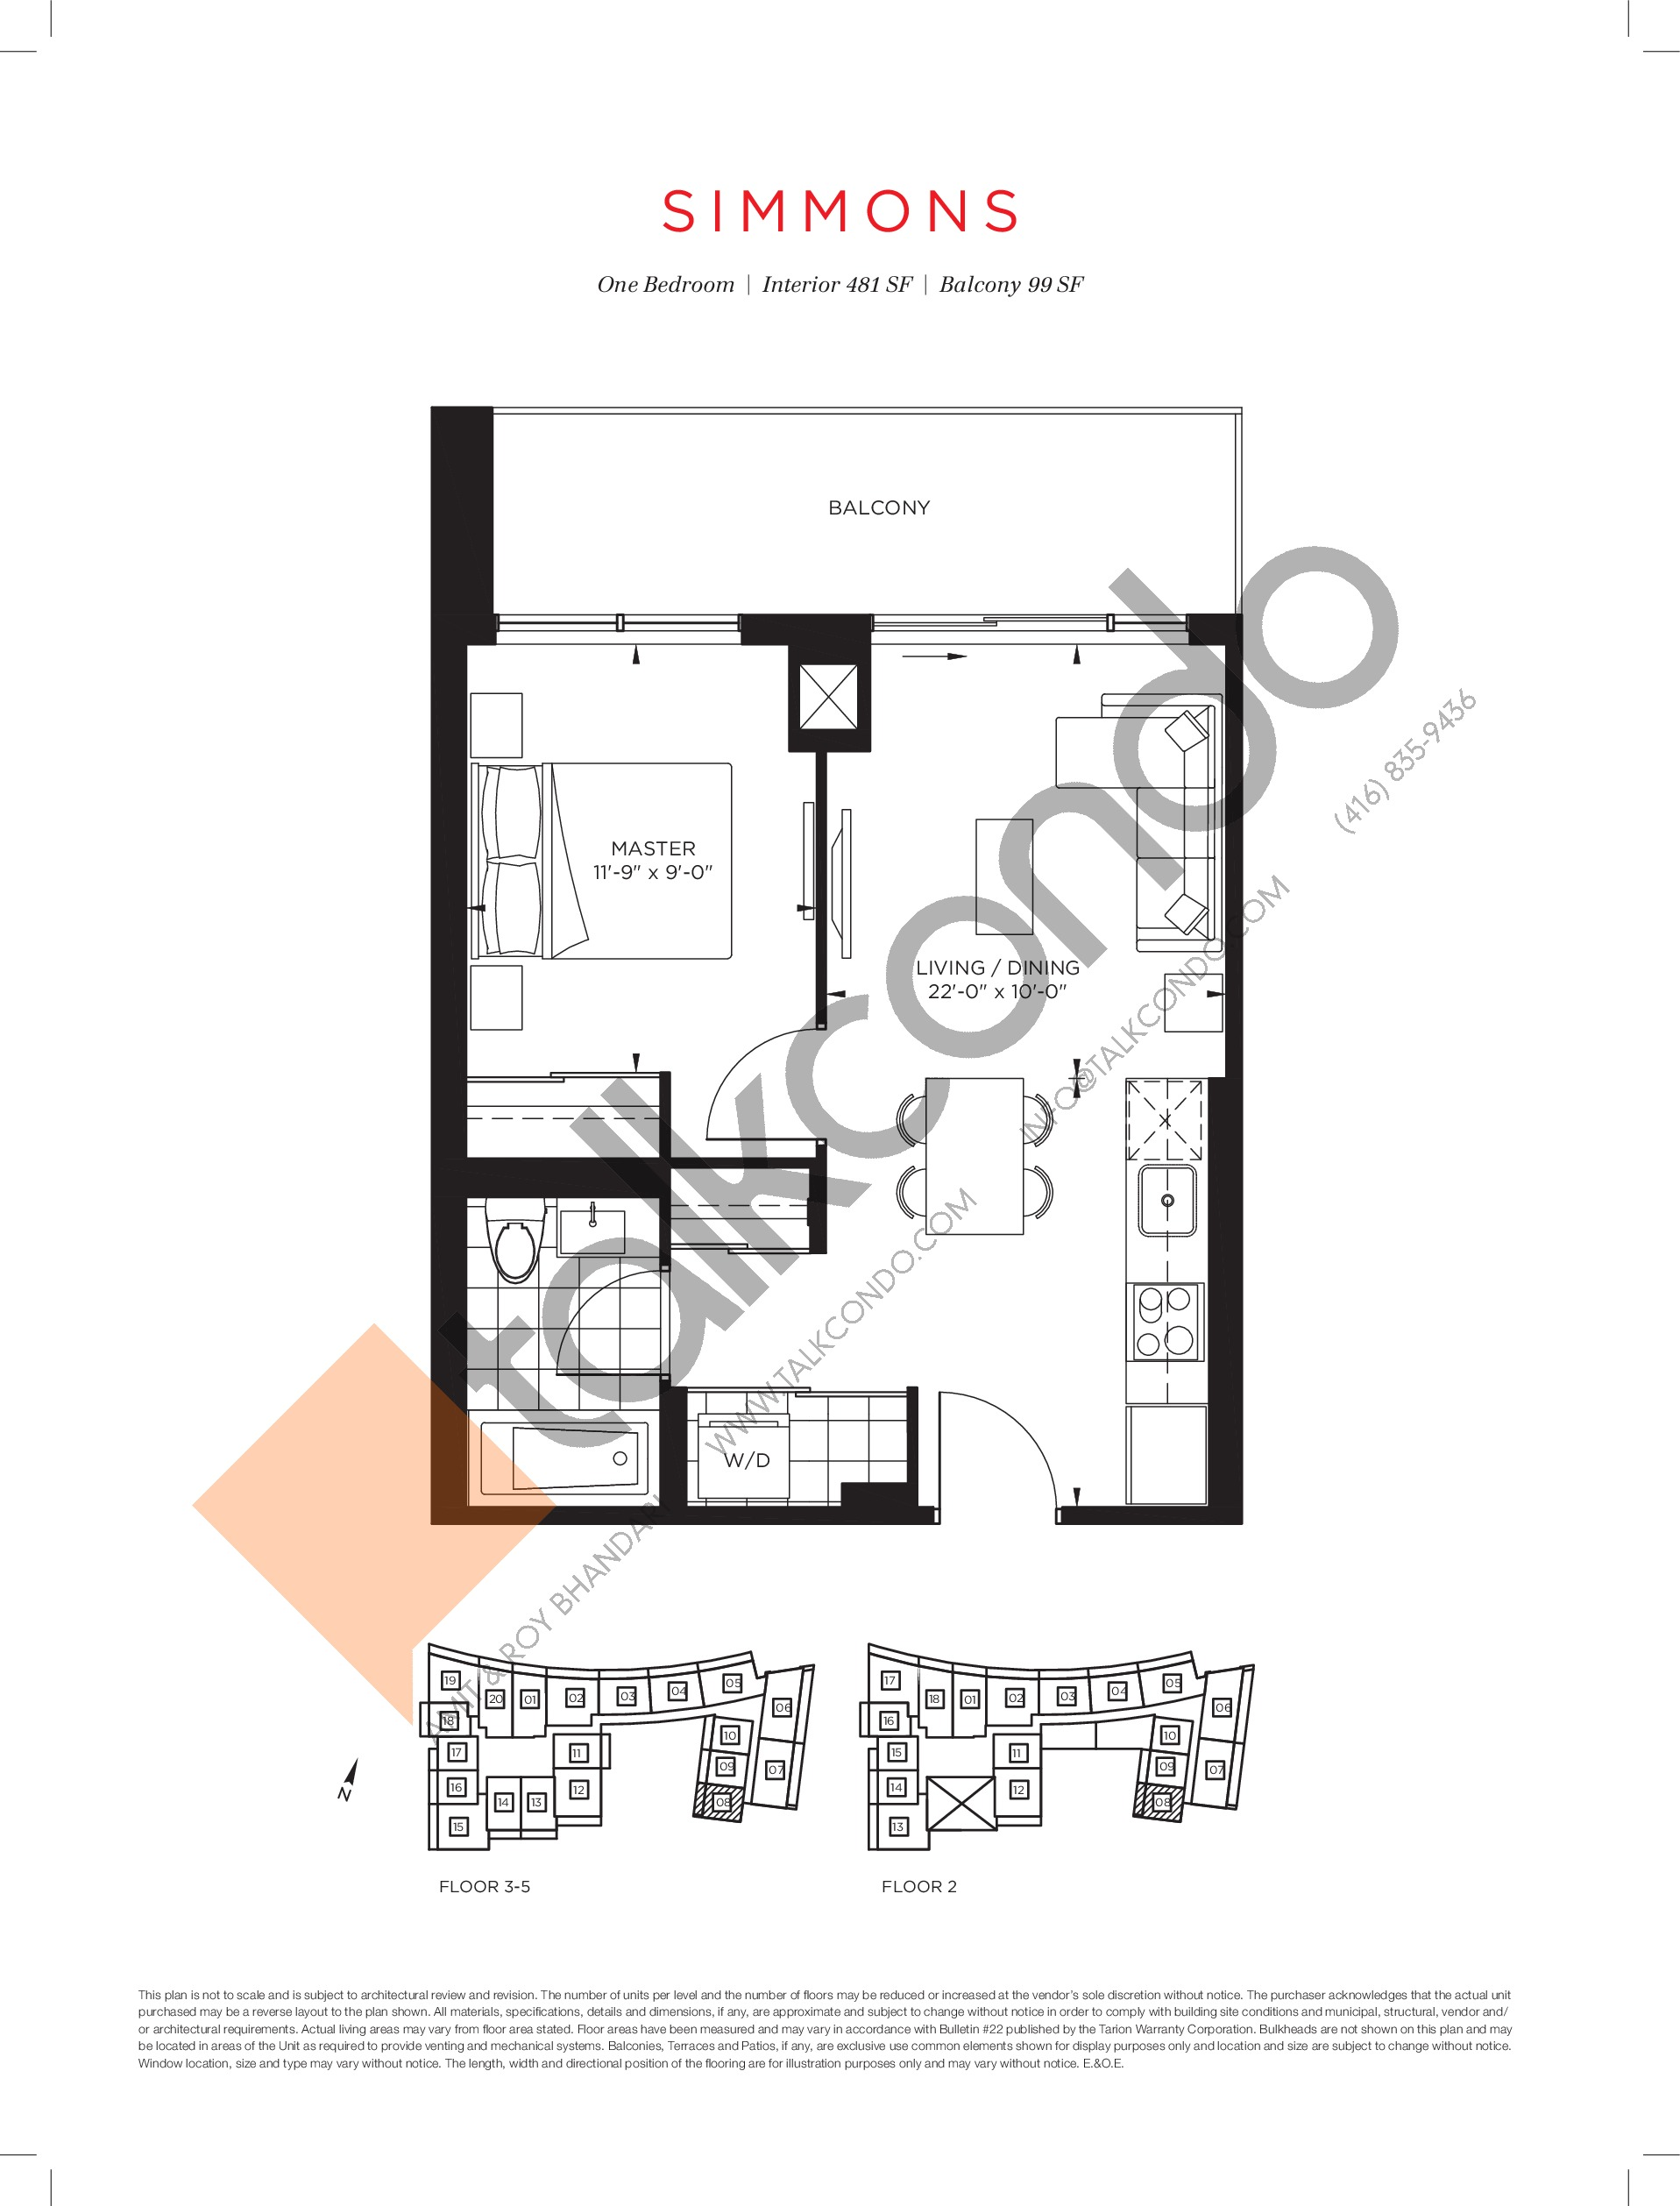 Simmons Floor Plan at The Point at Emerald City Condos - 481 sq.ft